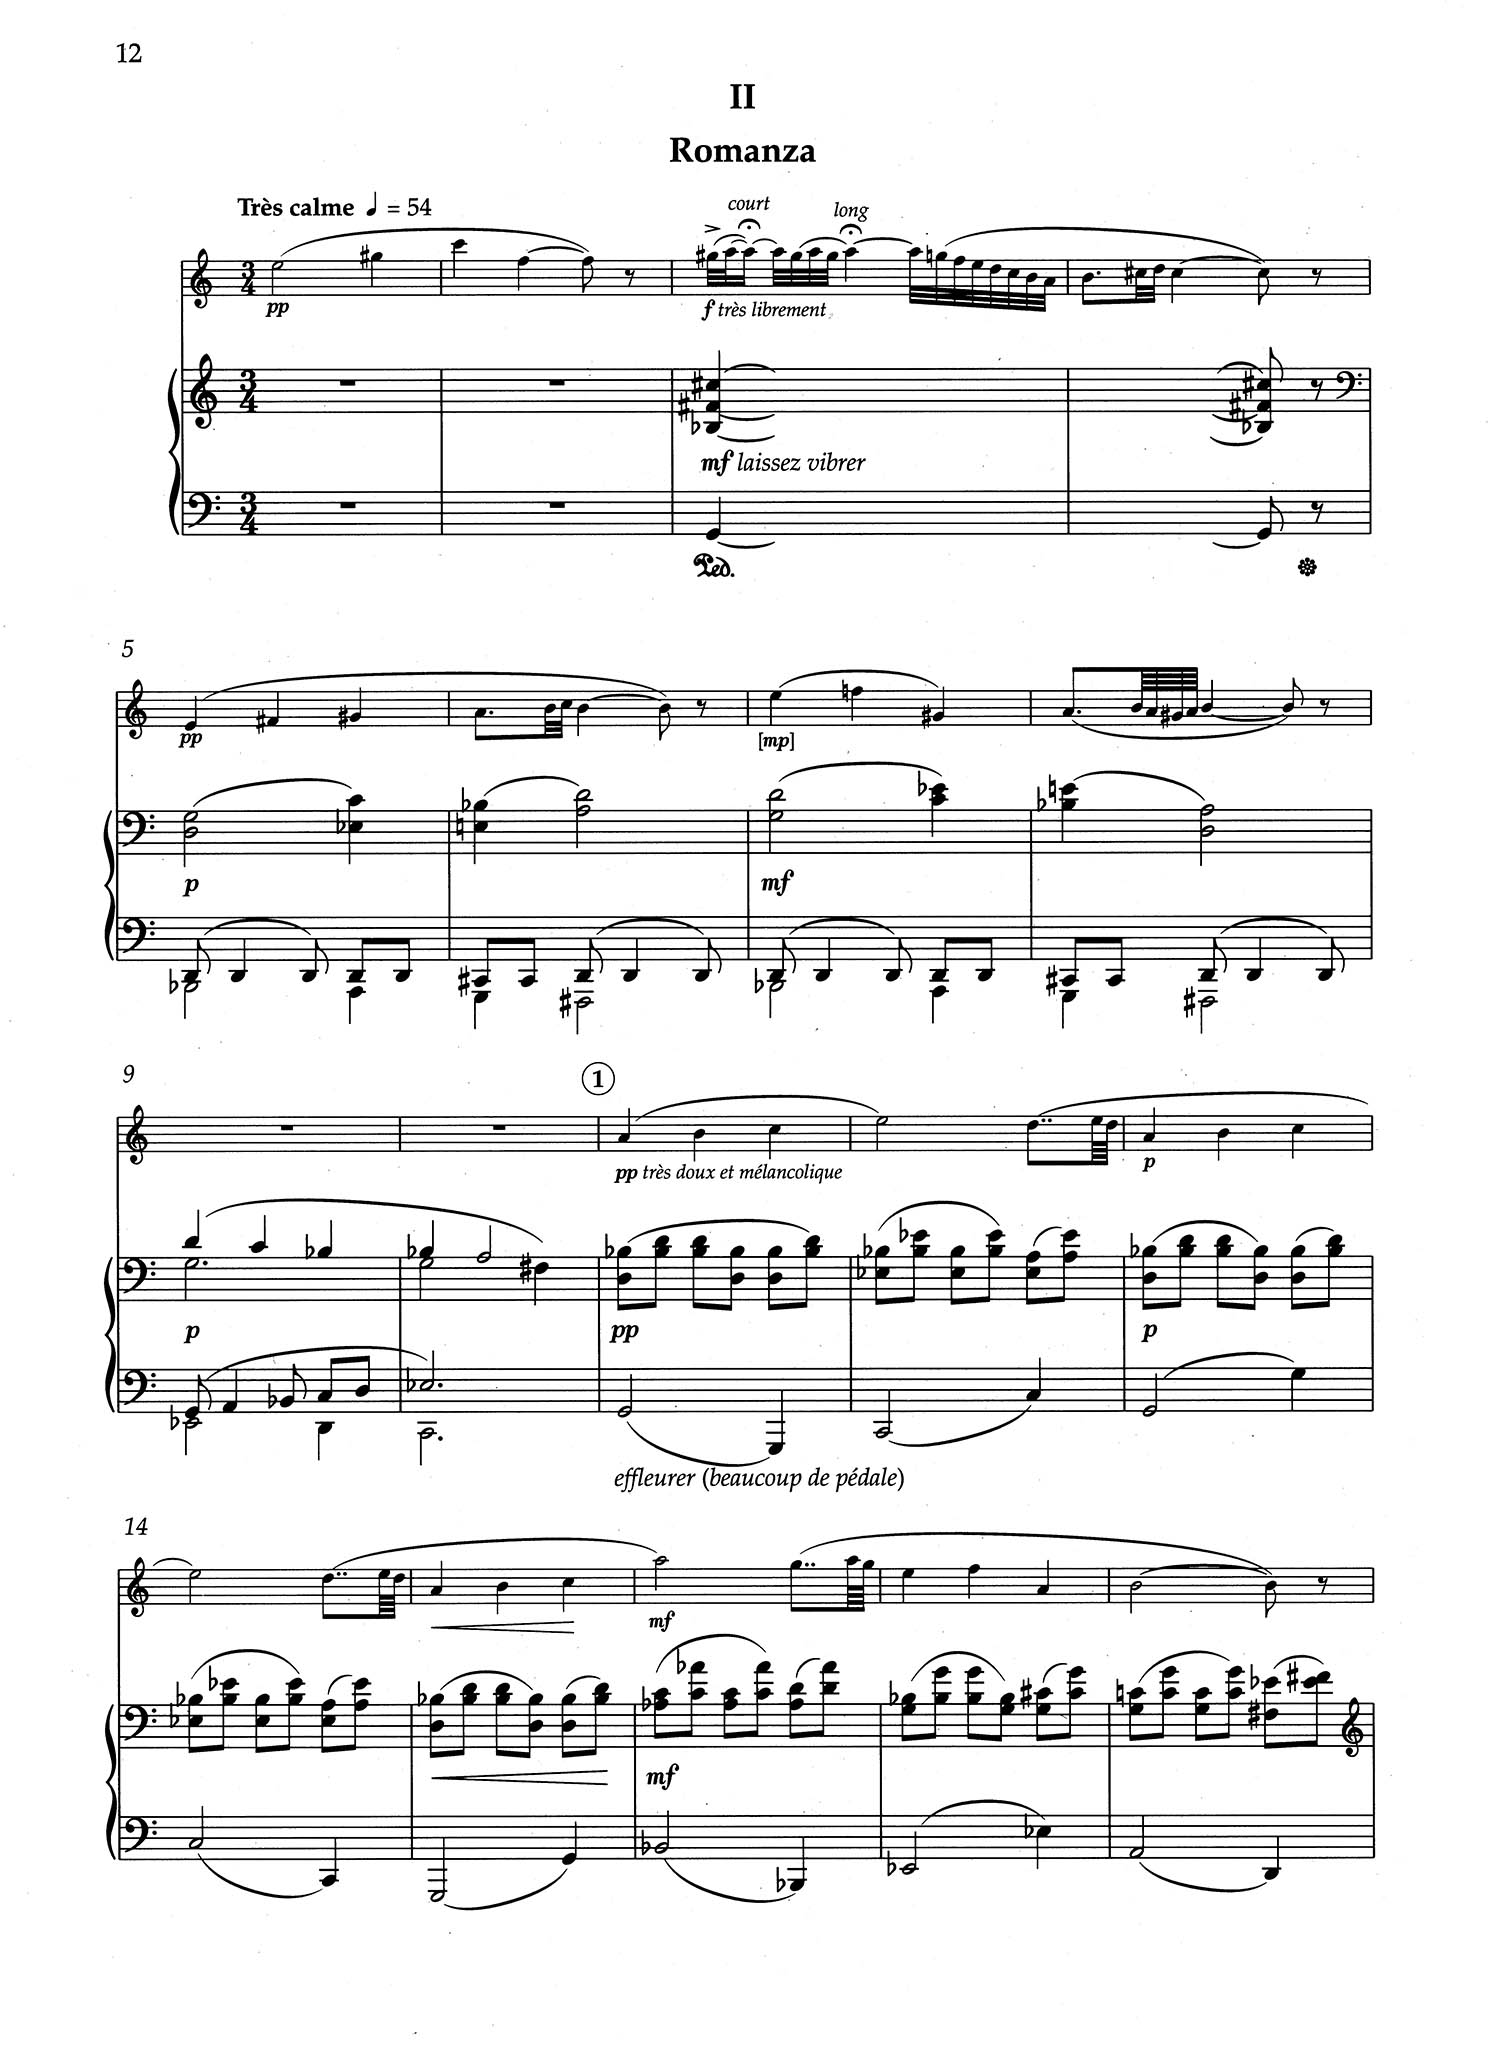 Sonata for Clarinet & Piano - Movement 2